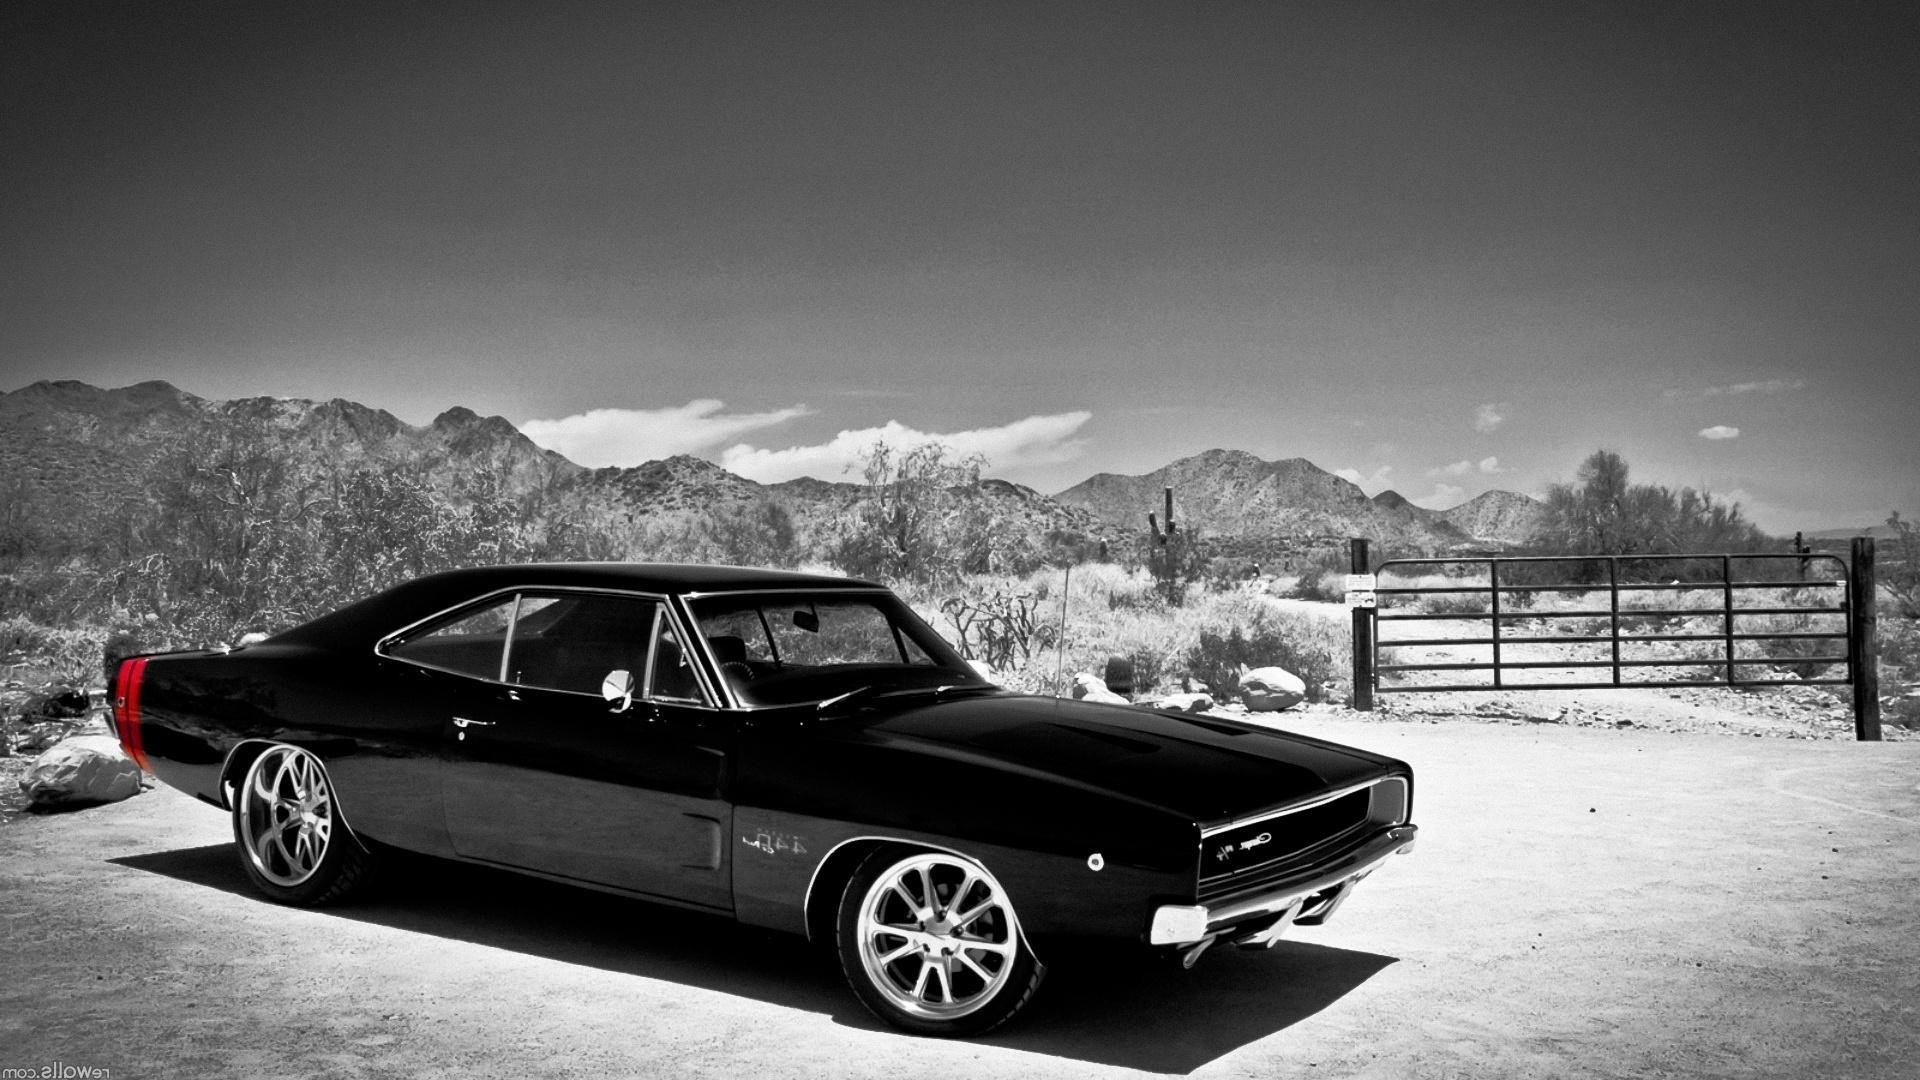 1969 dodge charger wallpaper | fulisuo1